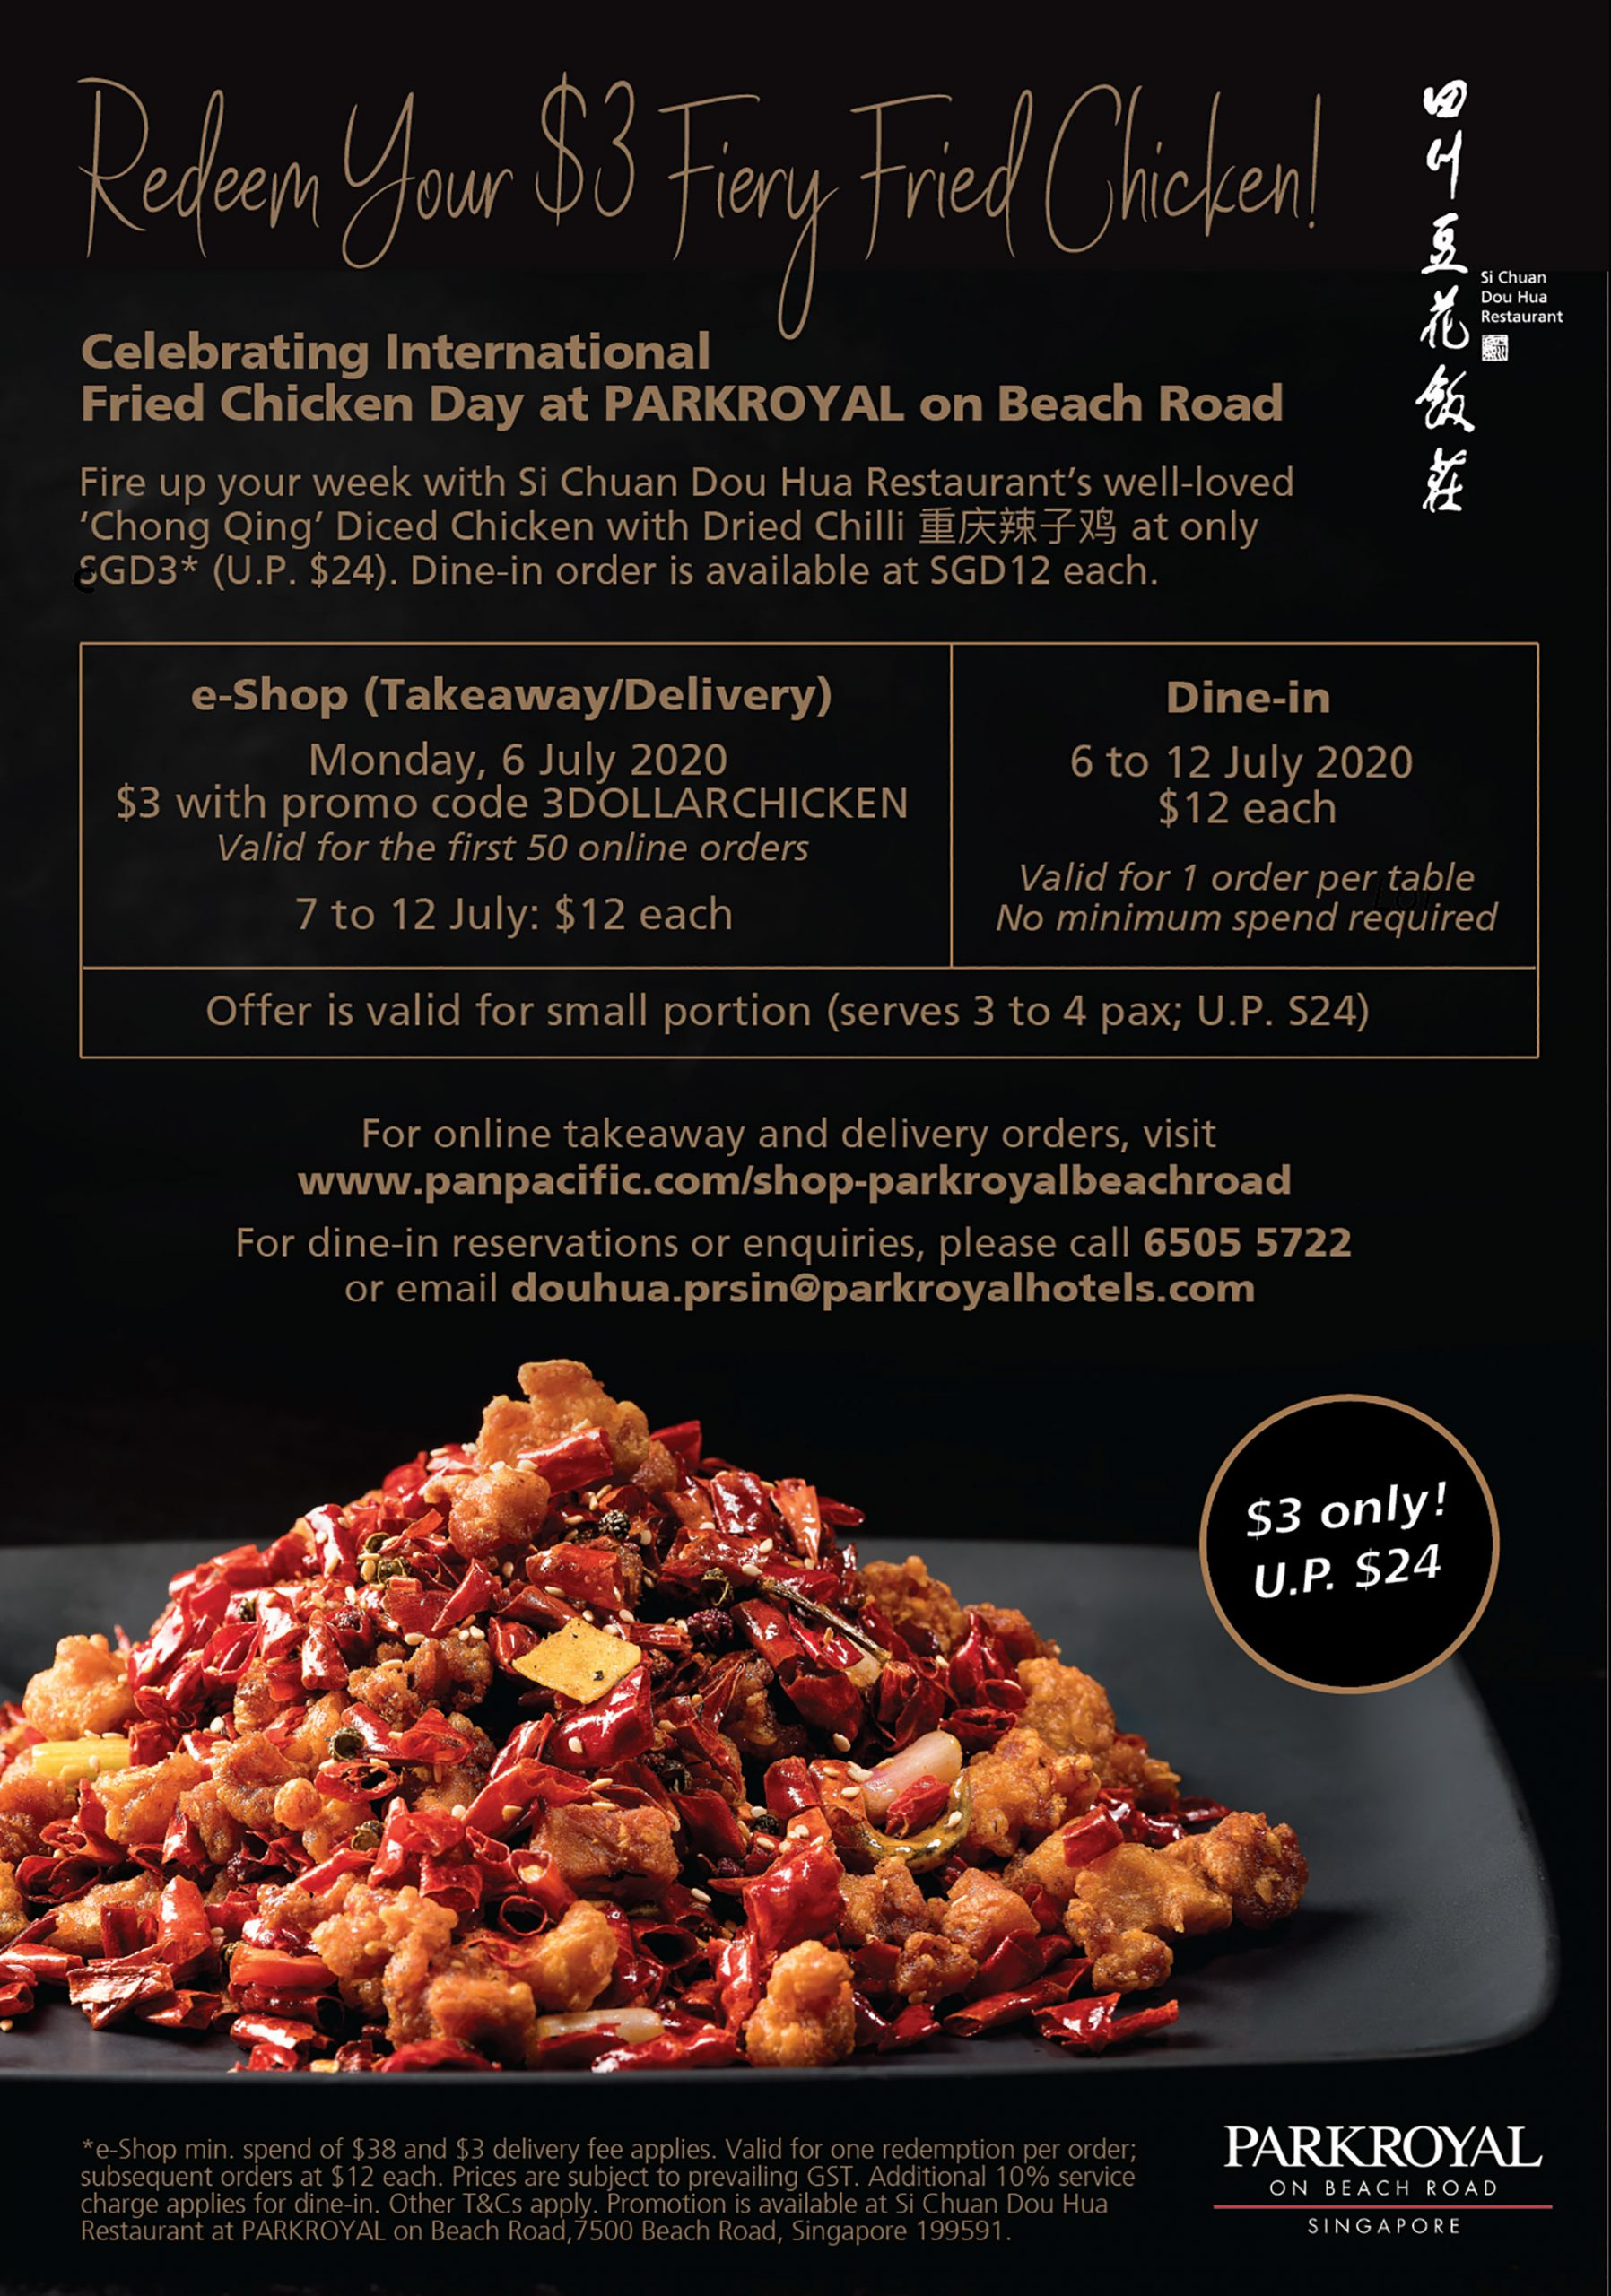 International-Fried-Chicken-Day-at-PARKROYAL-on-Beach-Road